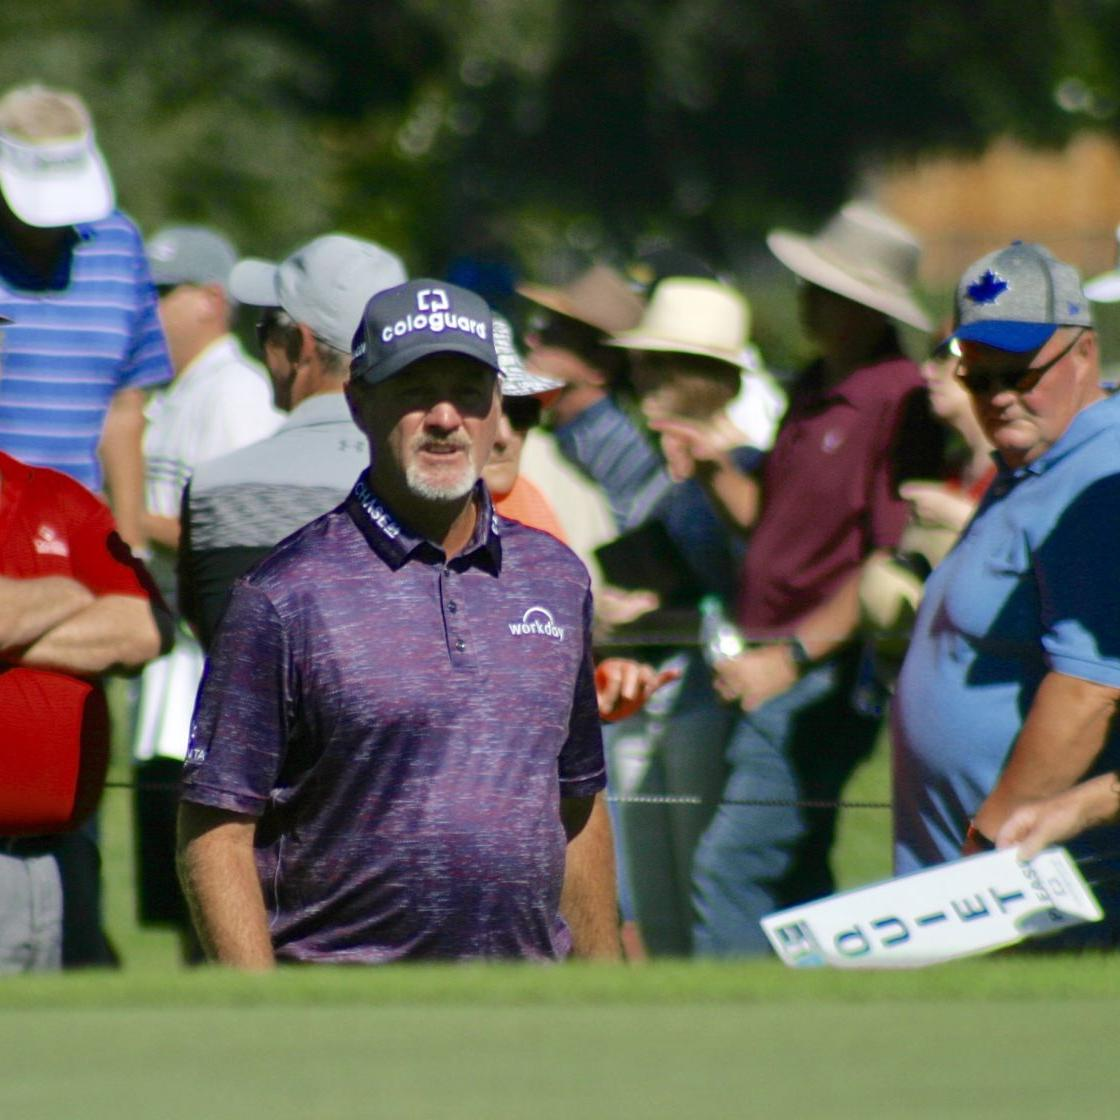 Swing change leads to change of fortunes late, but a 73 drops Jerry Kelly into tie for 30th at Schwab Cup finale